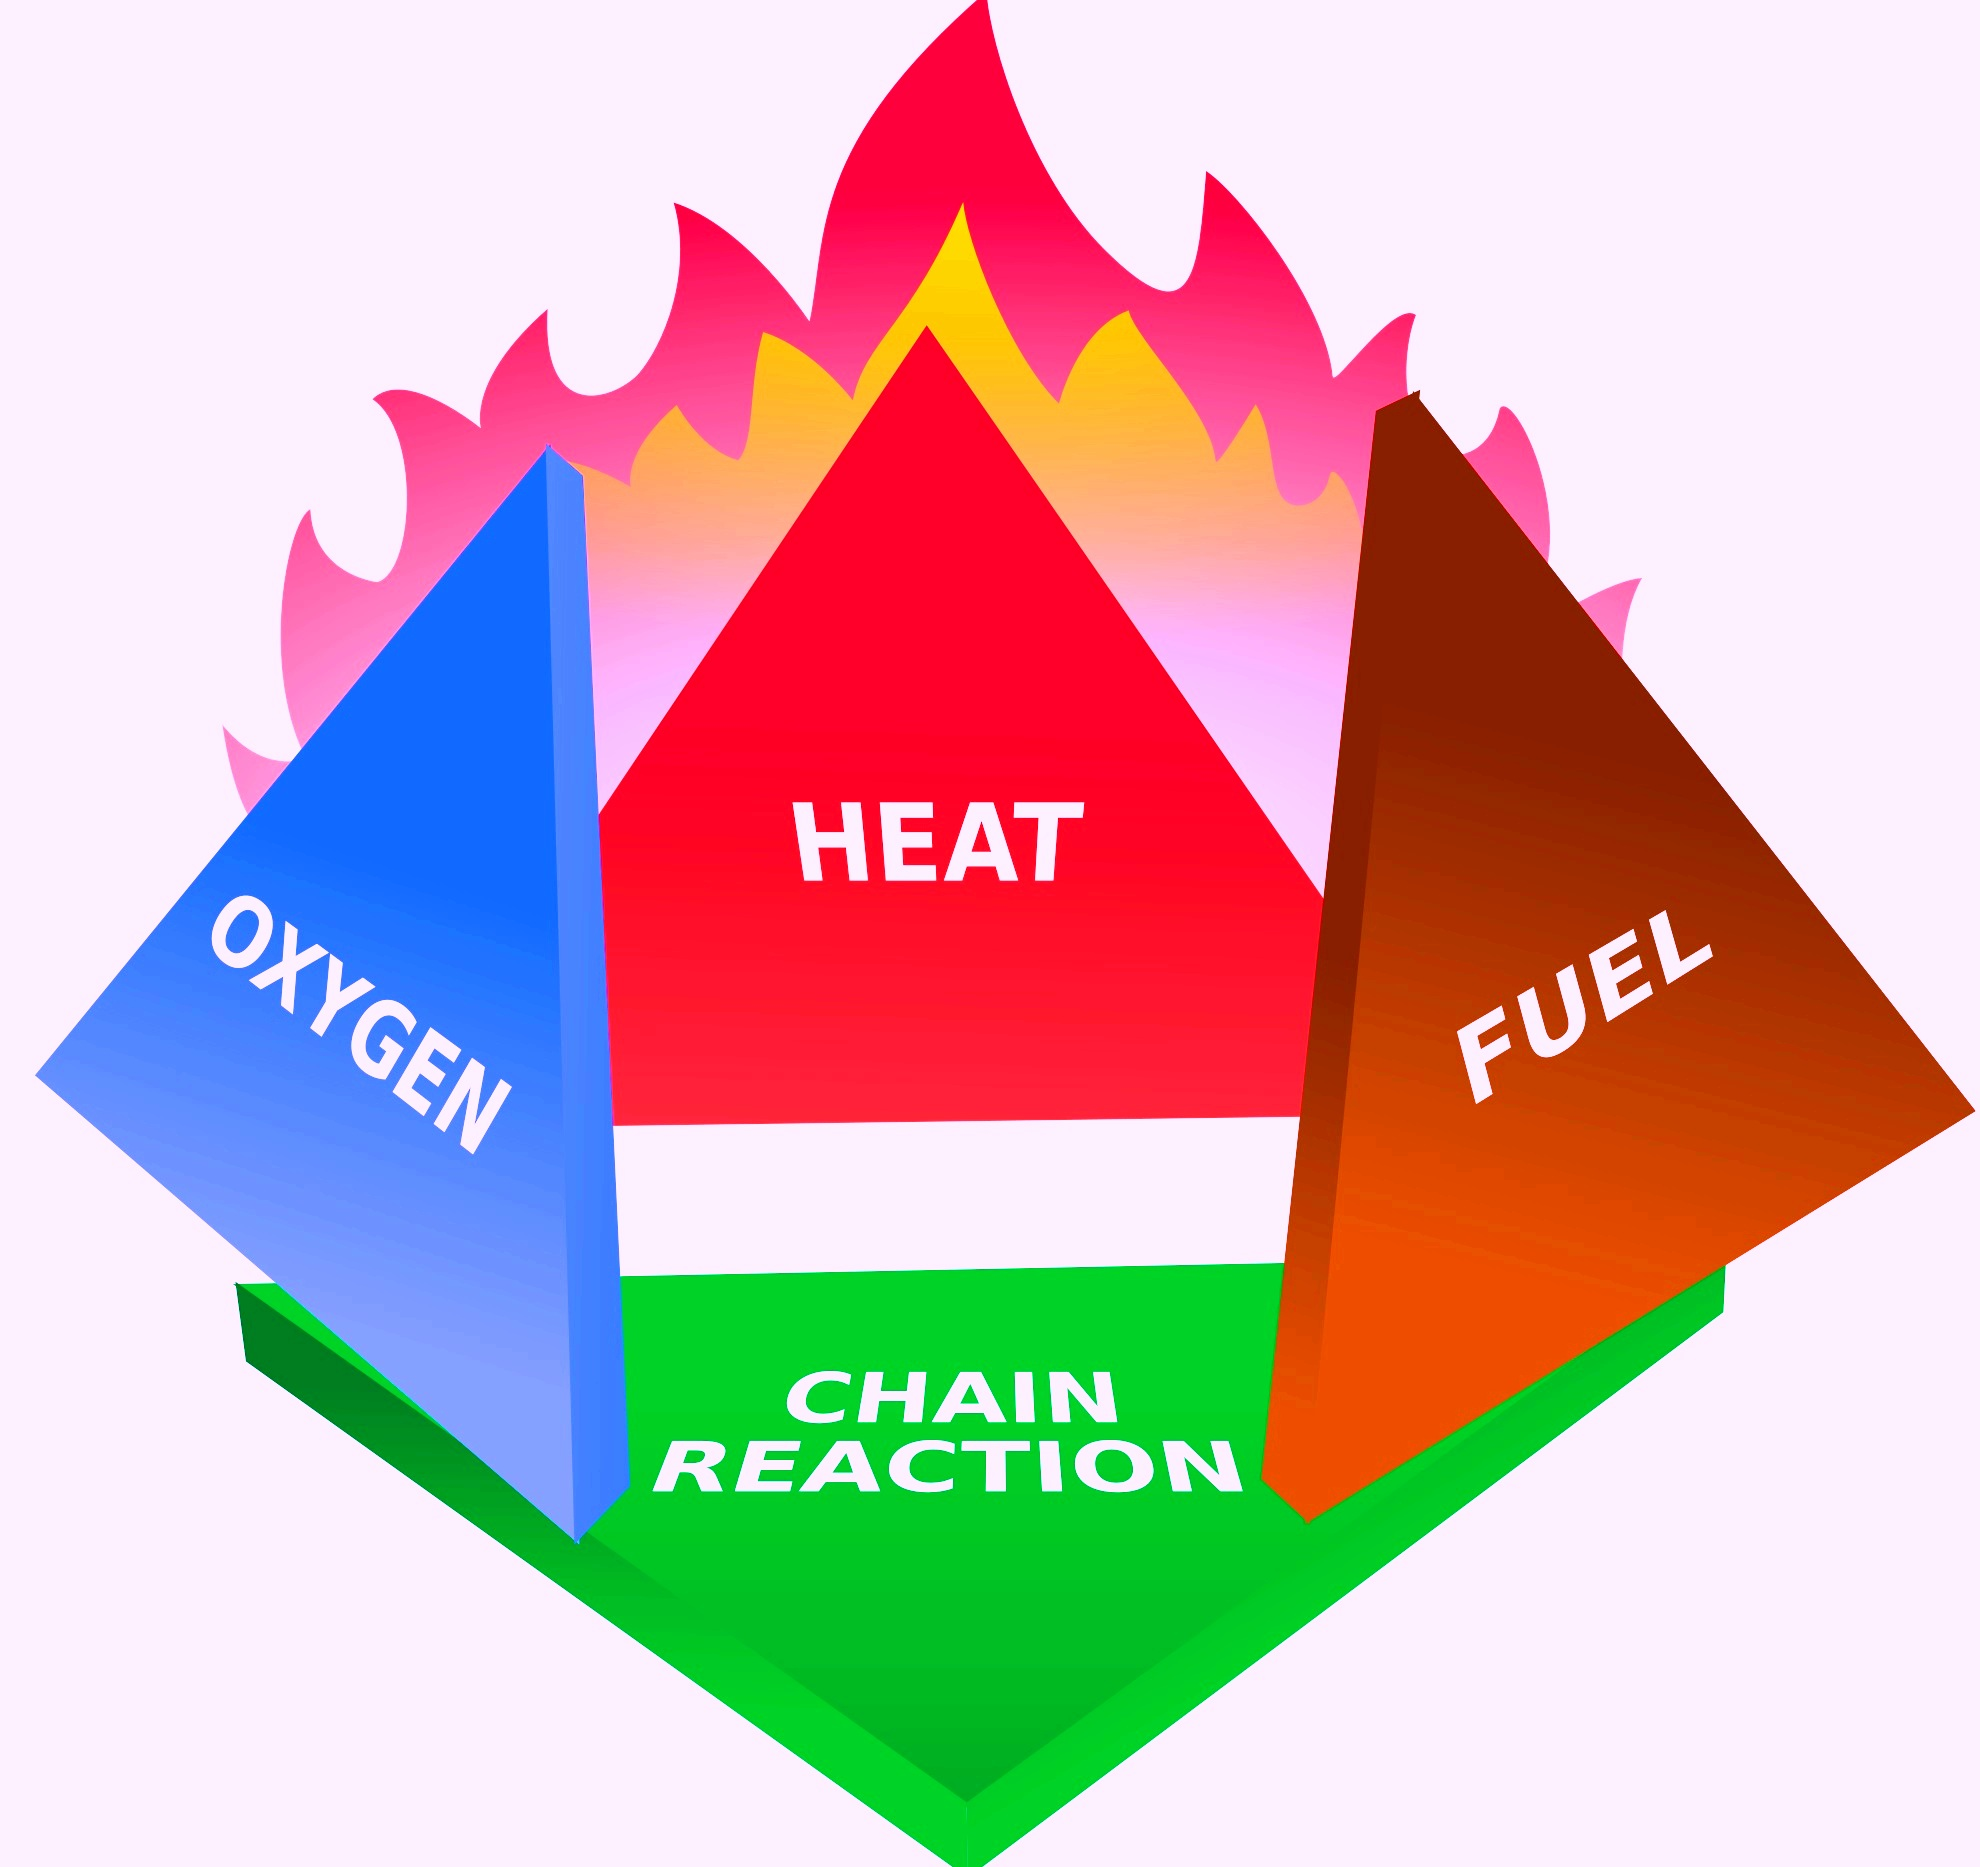 What is Fire Tetrahedron in fire